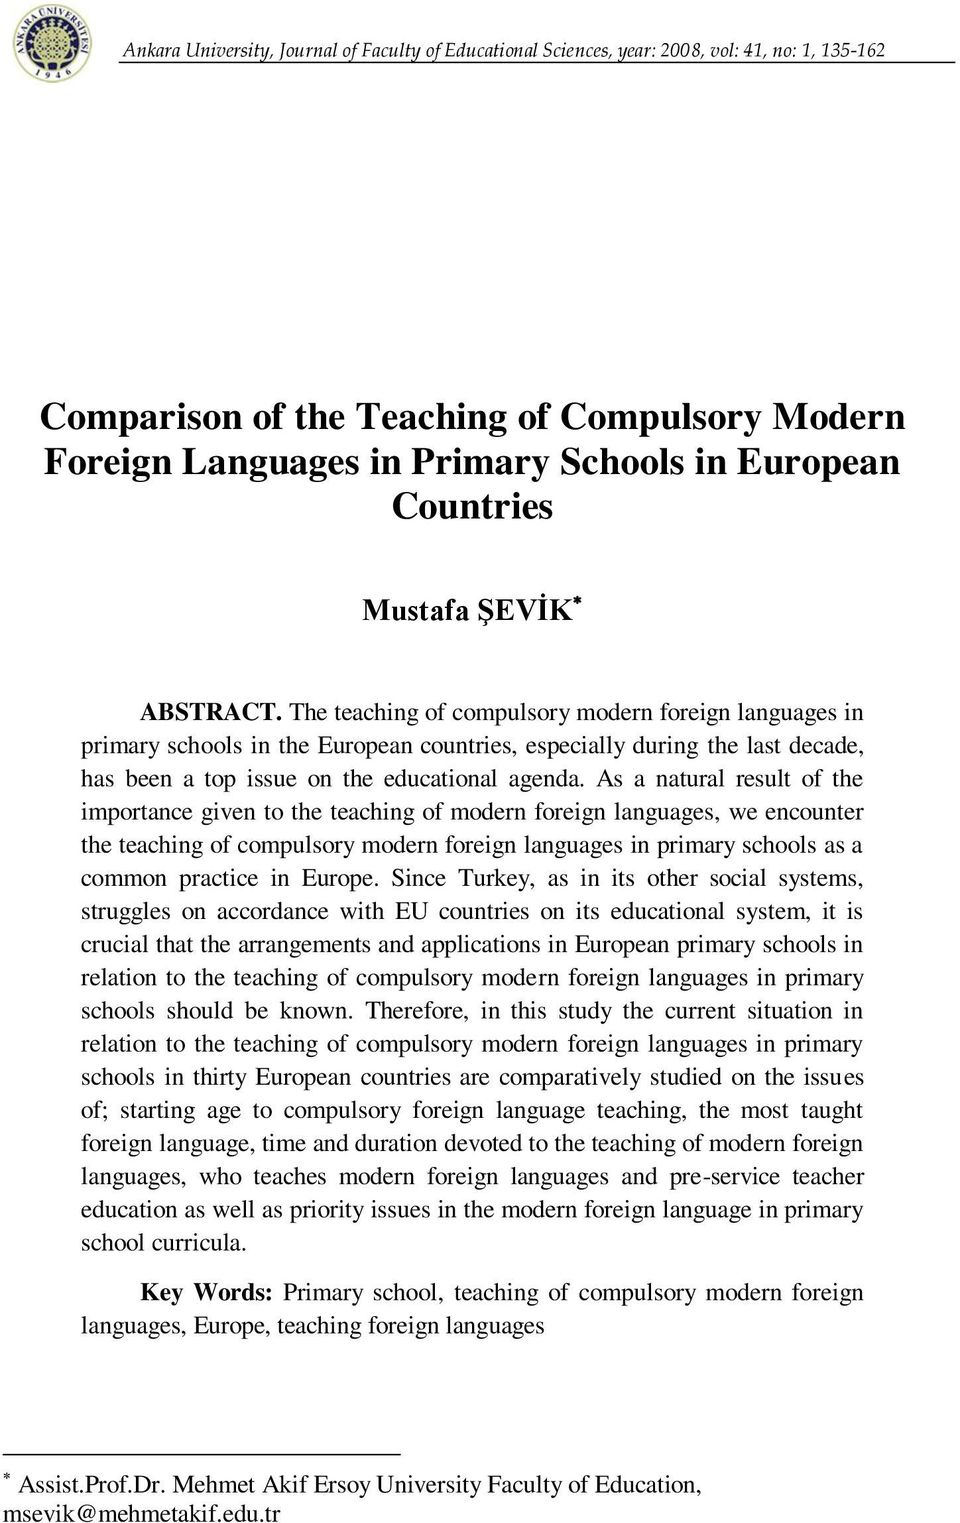 The teaching of compulsory modern foreign languages in primary schools in the European countries, especially during the last decade, has been a top issue on the educational agenda.